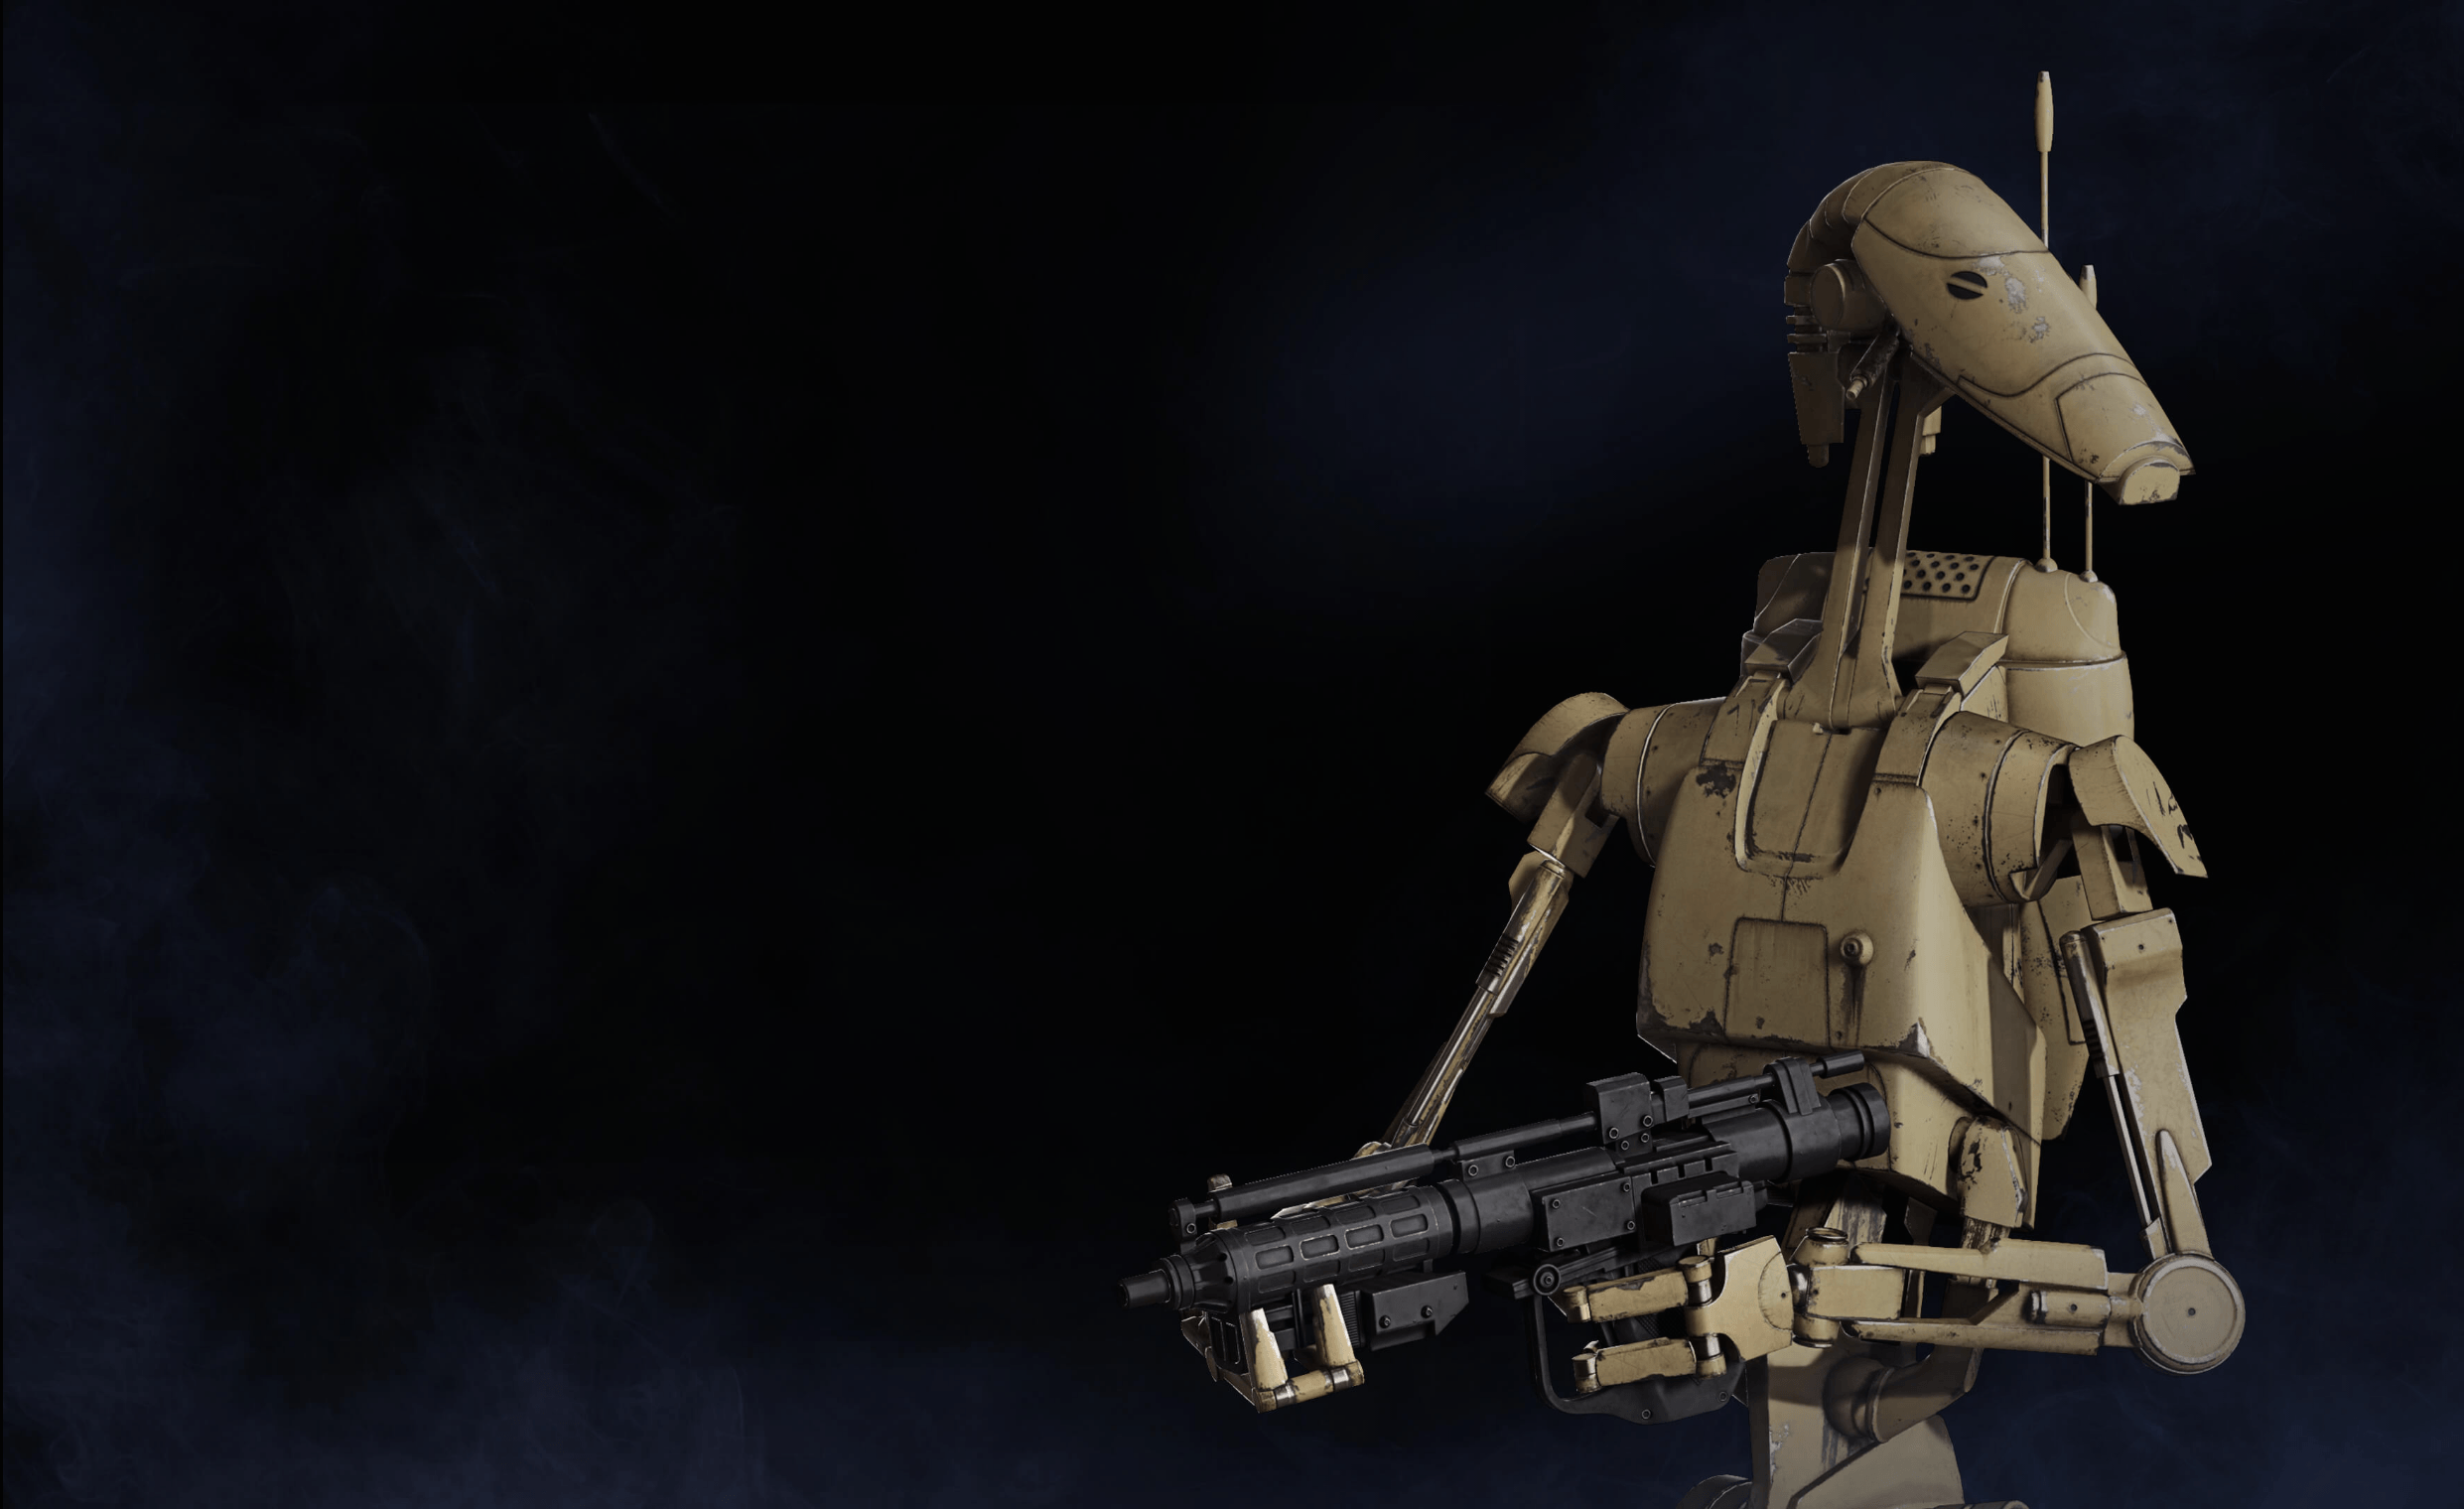 Battle Droid Wallpapers Wallpaper Cave